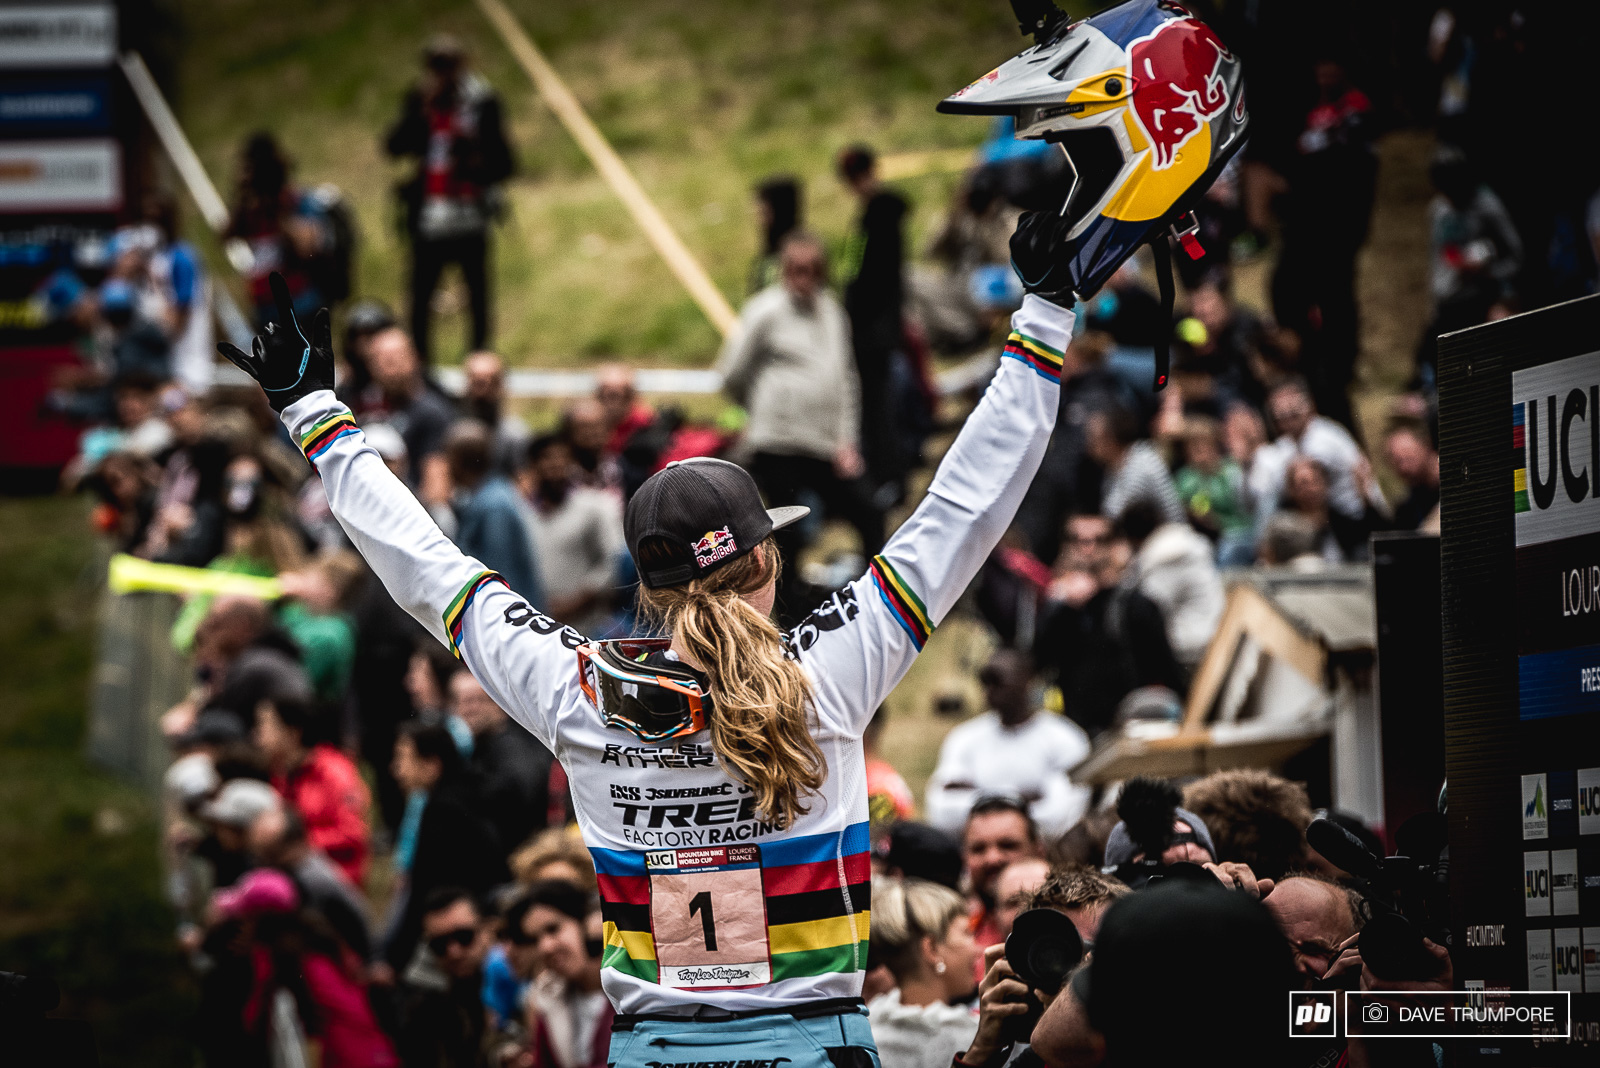 Another World Cup and another win for Rachel Atherton. But this one was not easy and the other women are hot on her heals right now.